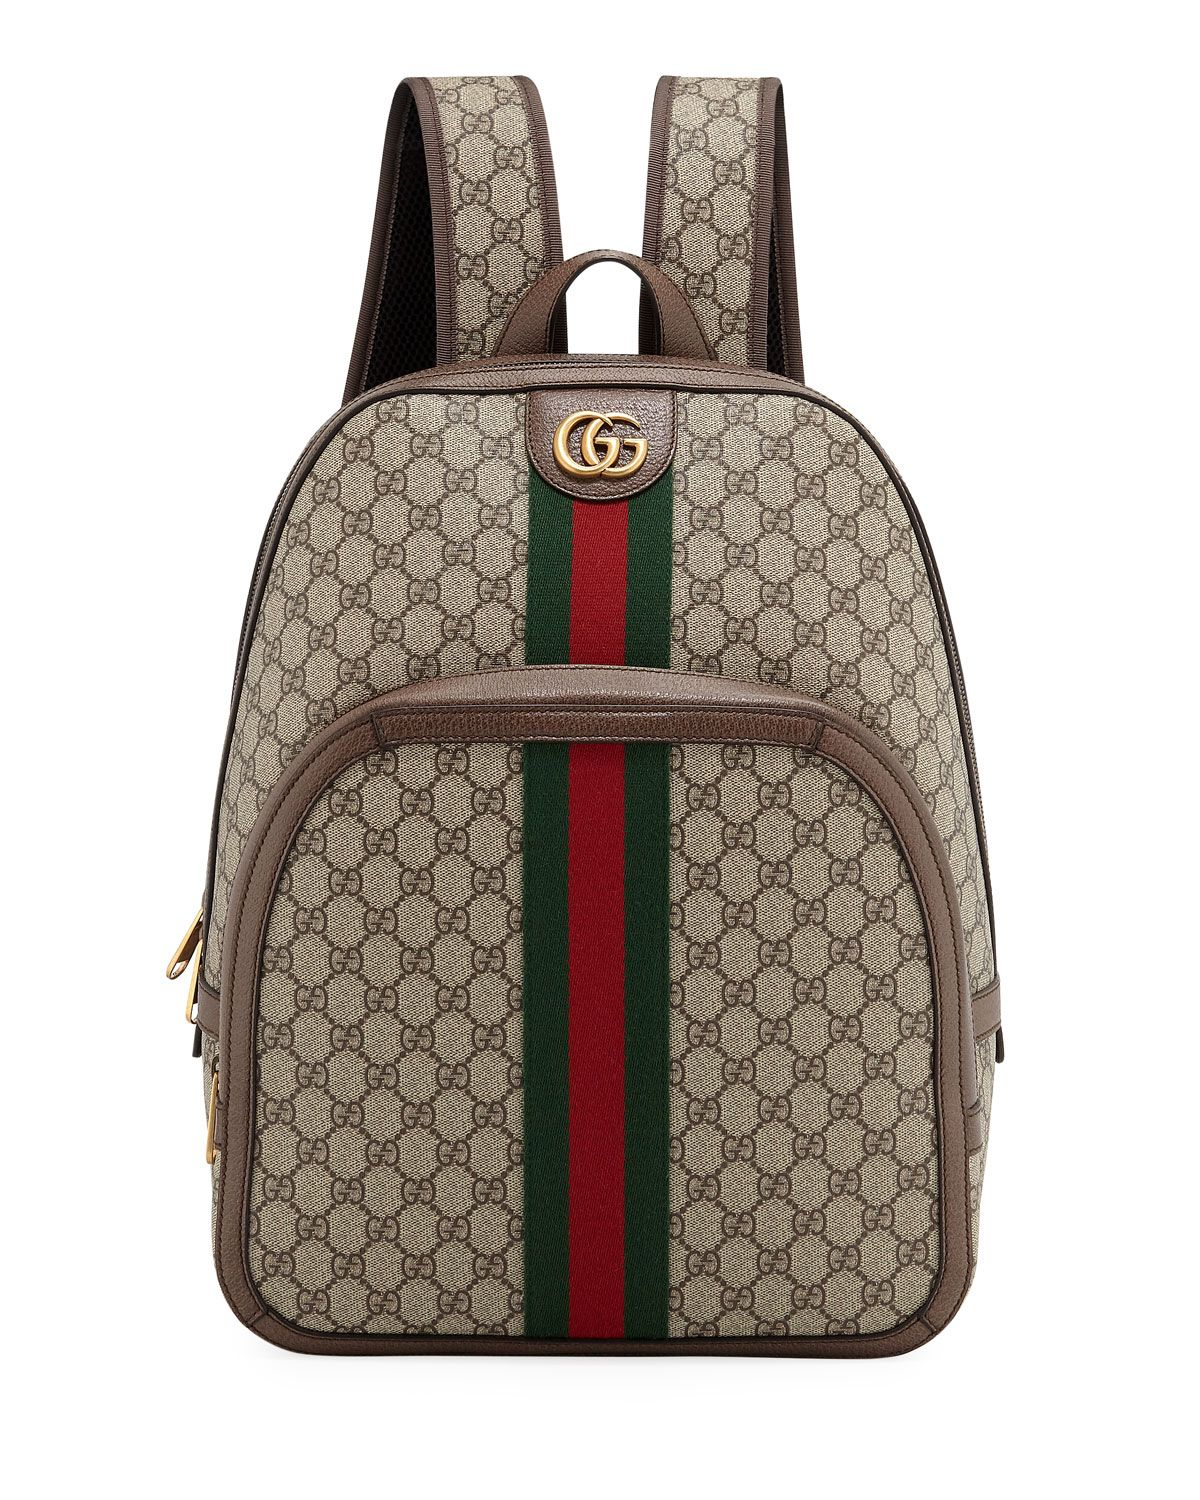 1767c6be4 GUCCI MEN'S GG SUPREME MEDIUM CANVAS BACKPACK. #gucci #bags #leather  #canvas #backpacks